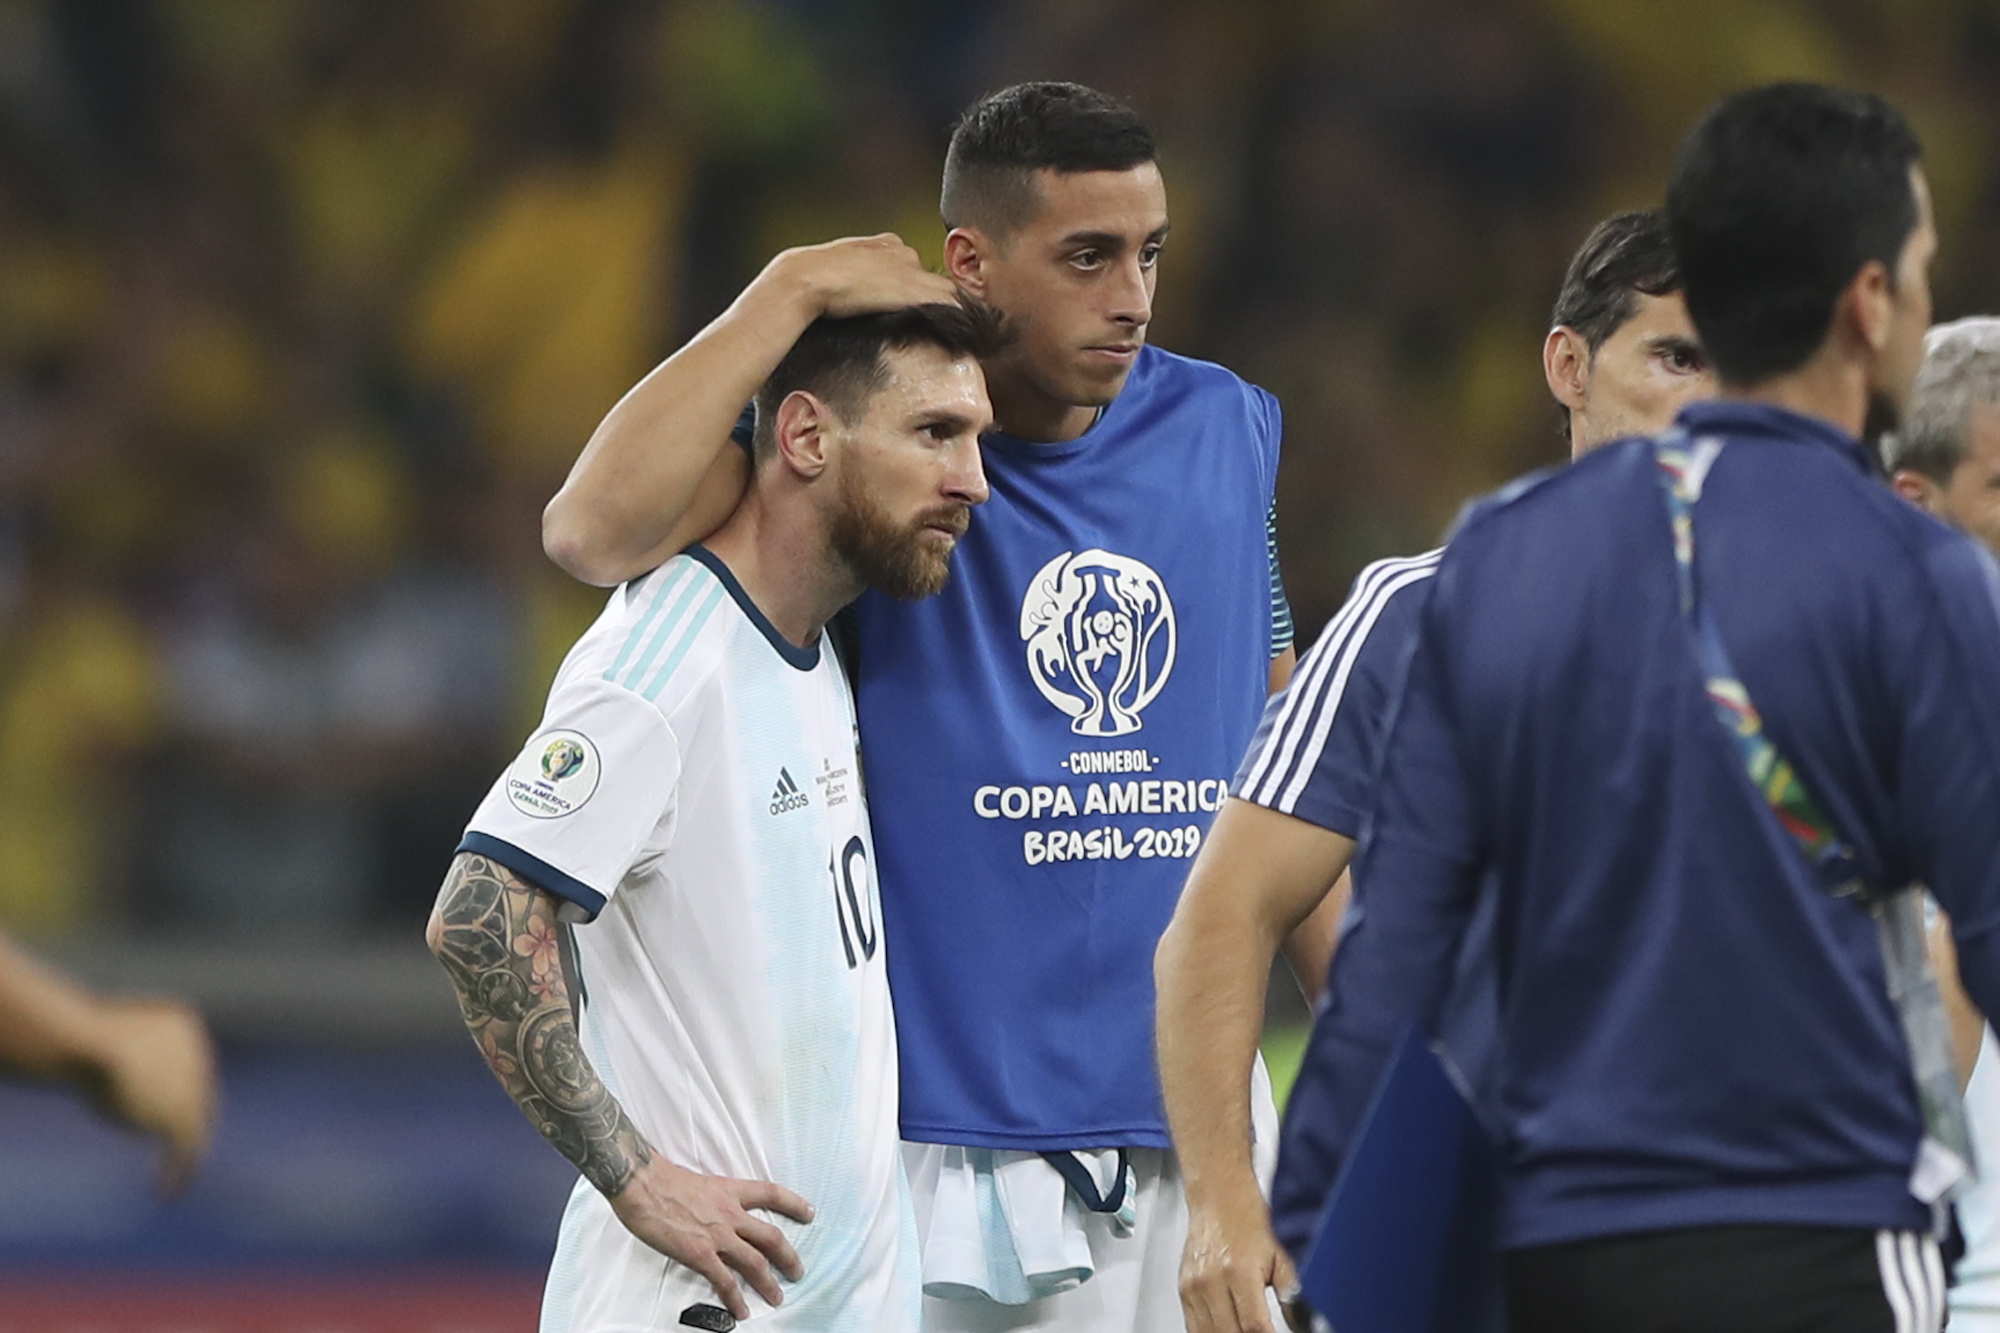 Messi consoled at the end of the Copa America semi-final. Image: PA Images